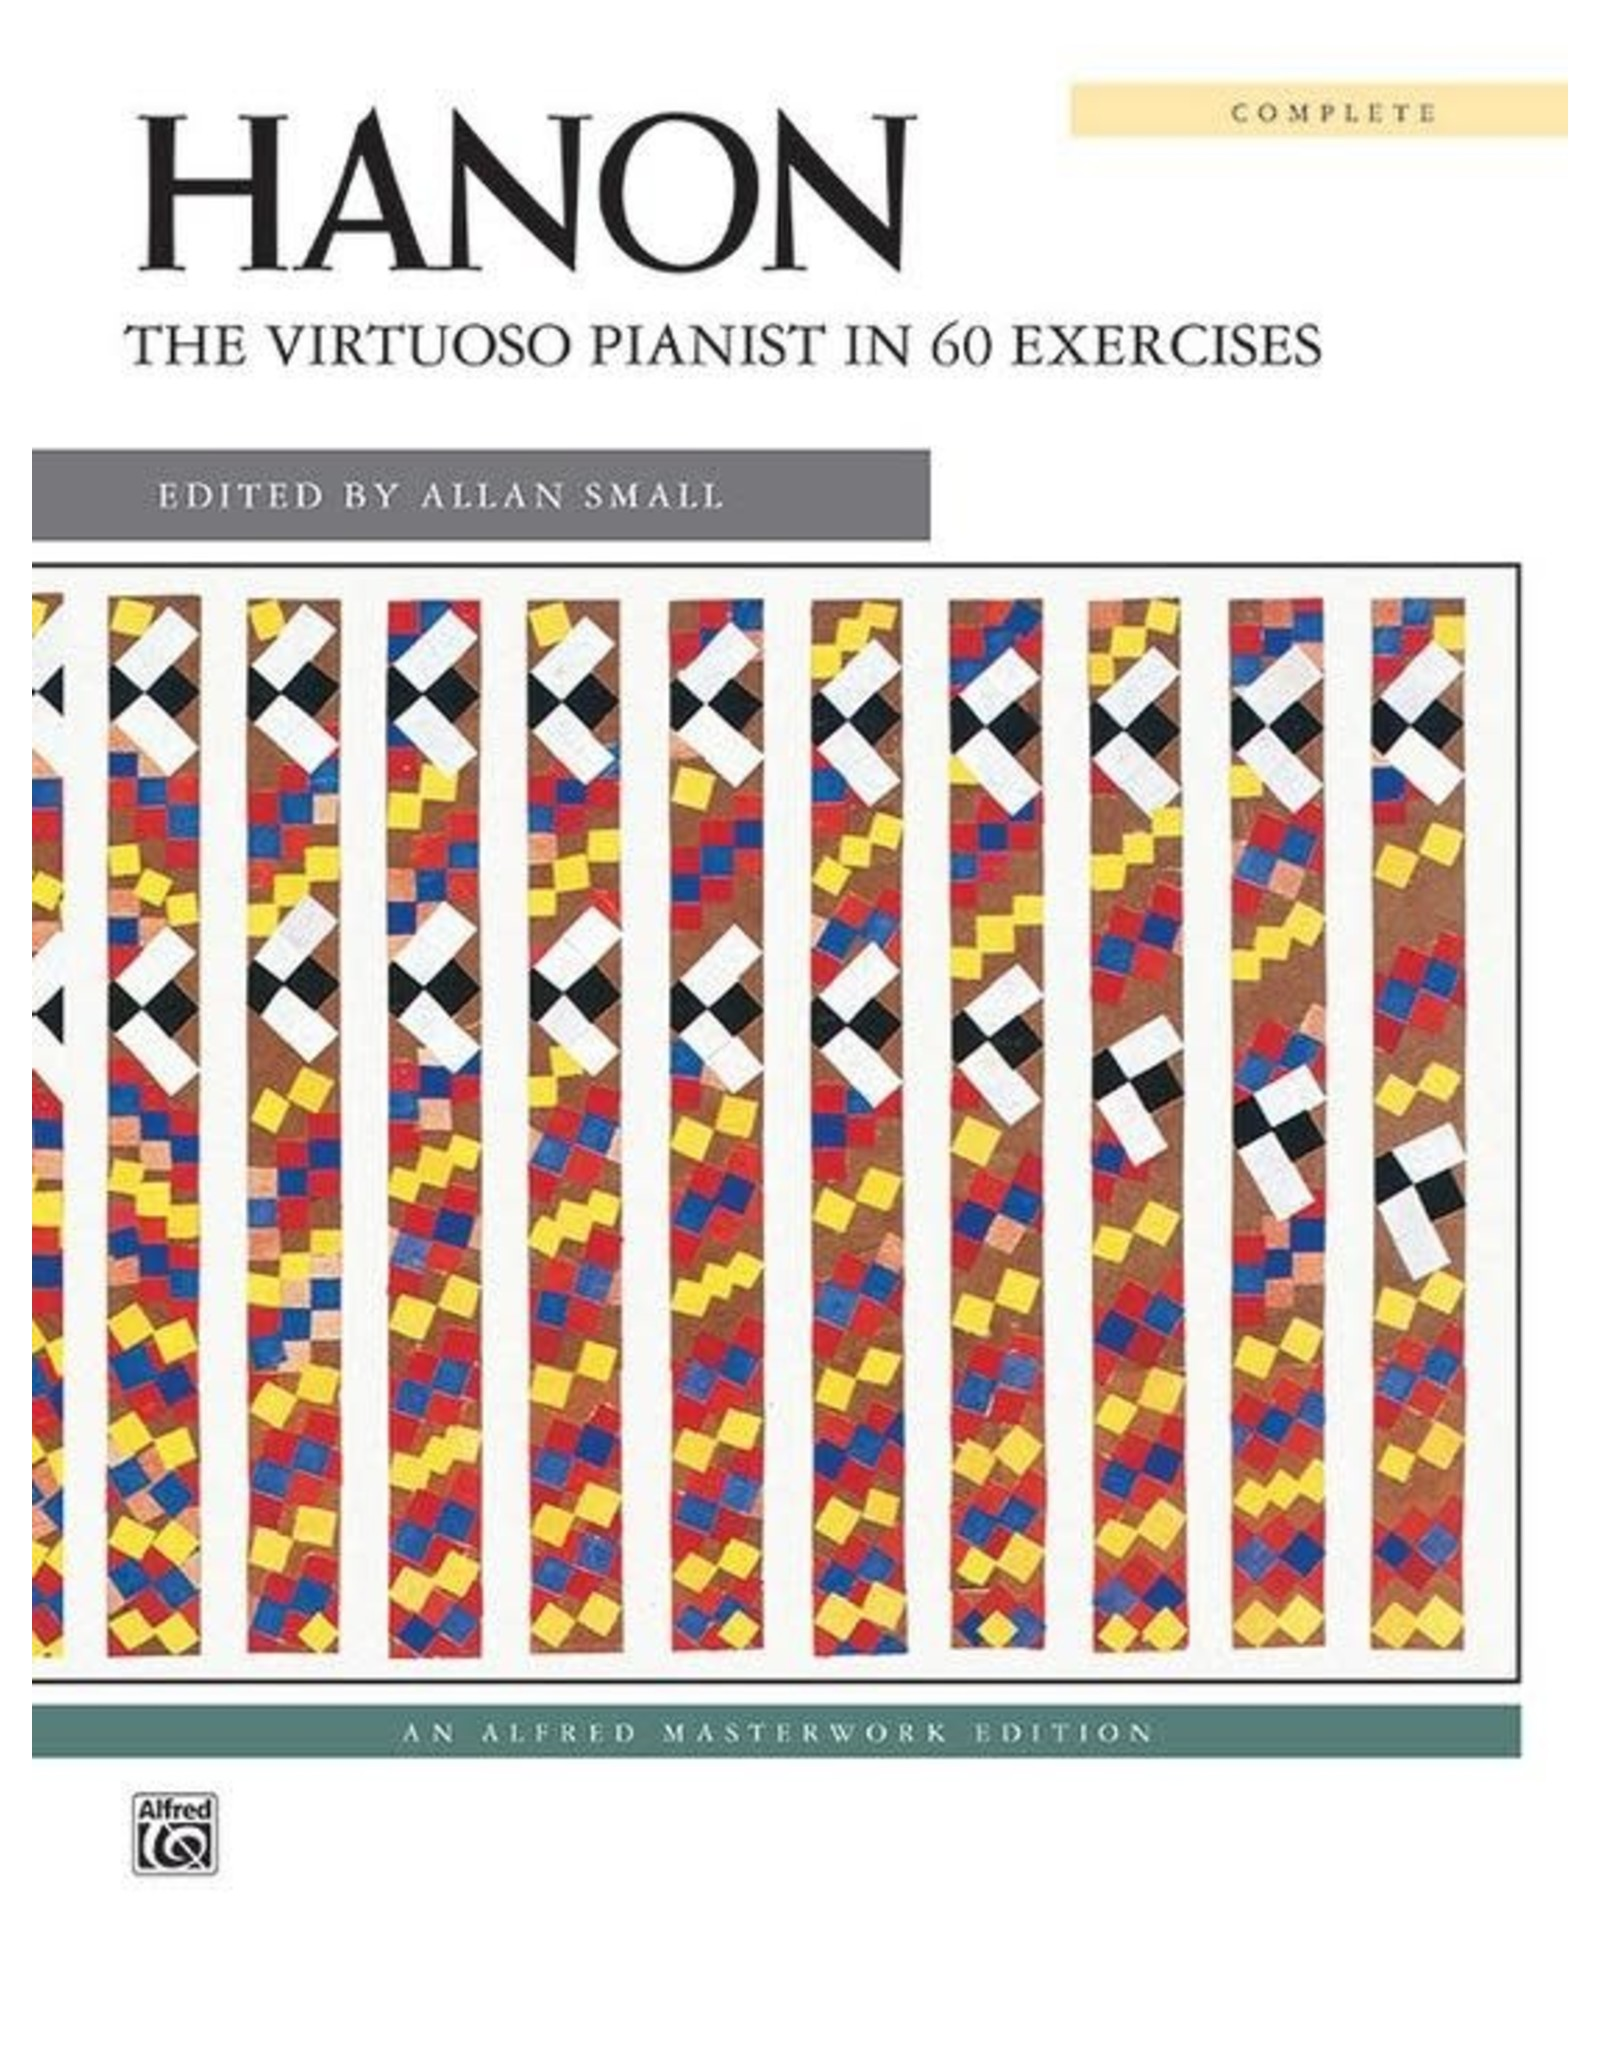 Alfred Hanon - The Virtuoso Pianist in 60 Excercises Complete ed. Allan Small - Spiral Bound